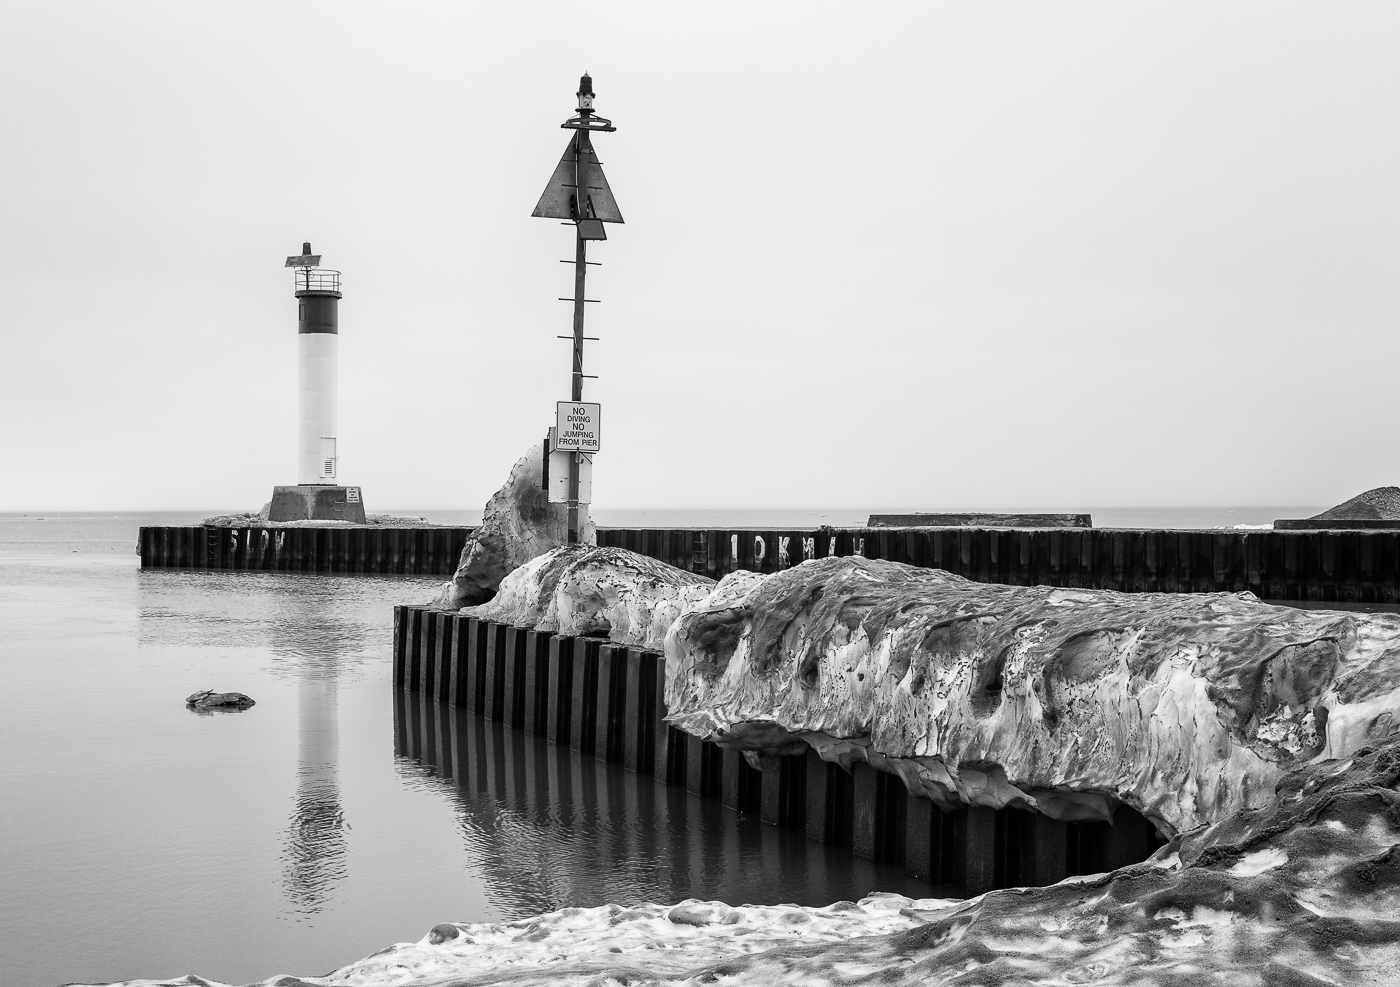 January Thaw at Grand Bend